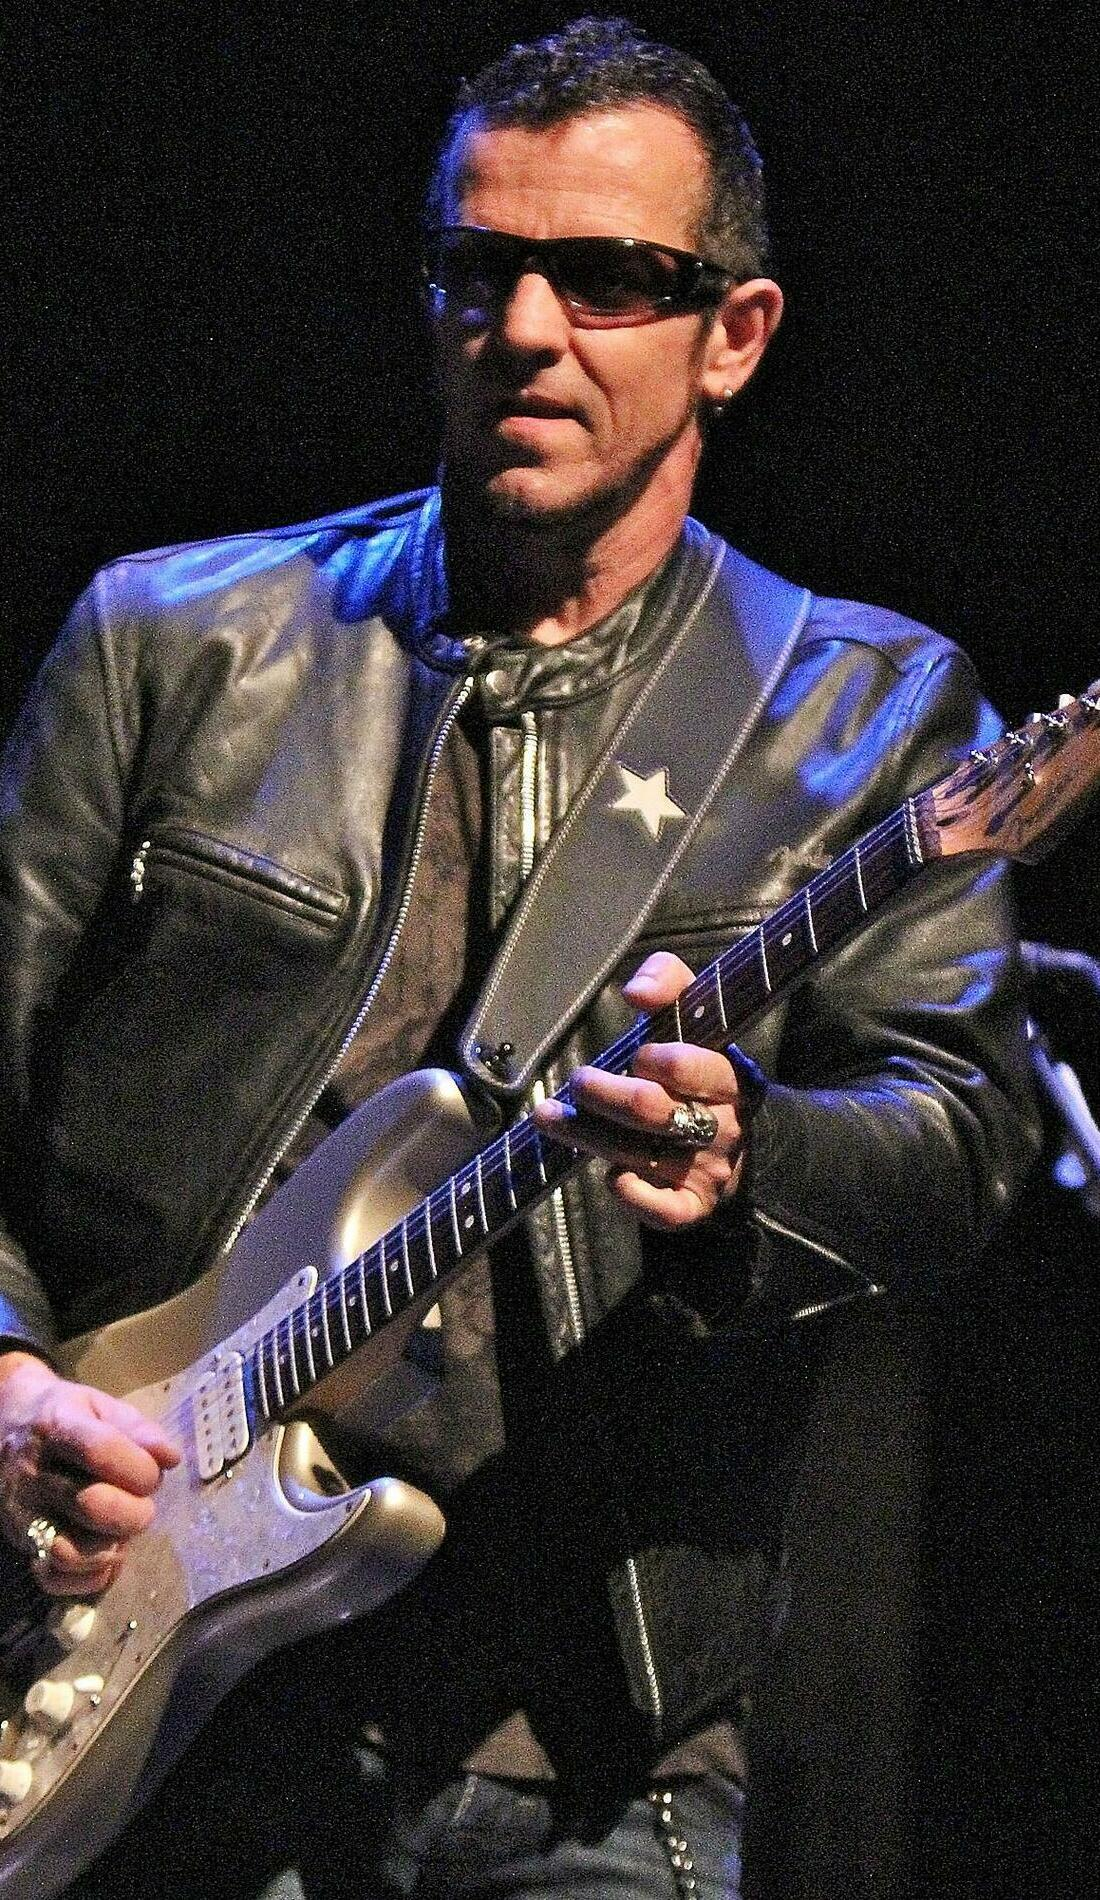 A Gary Hoey live event